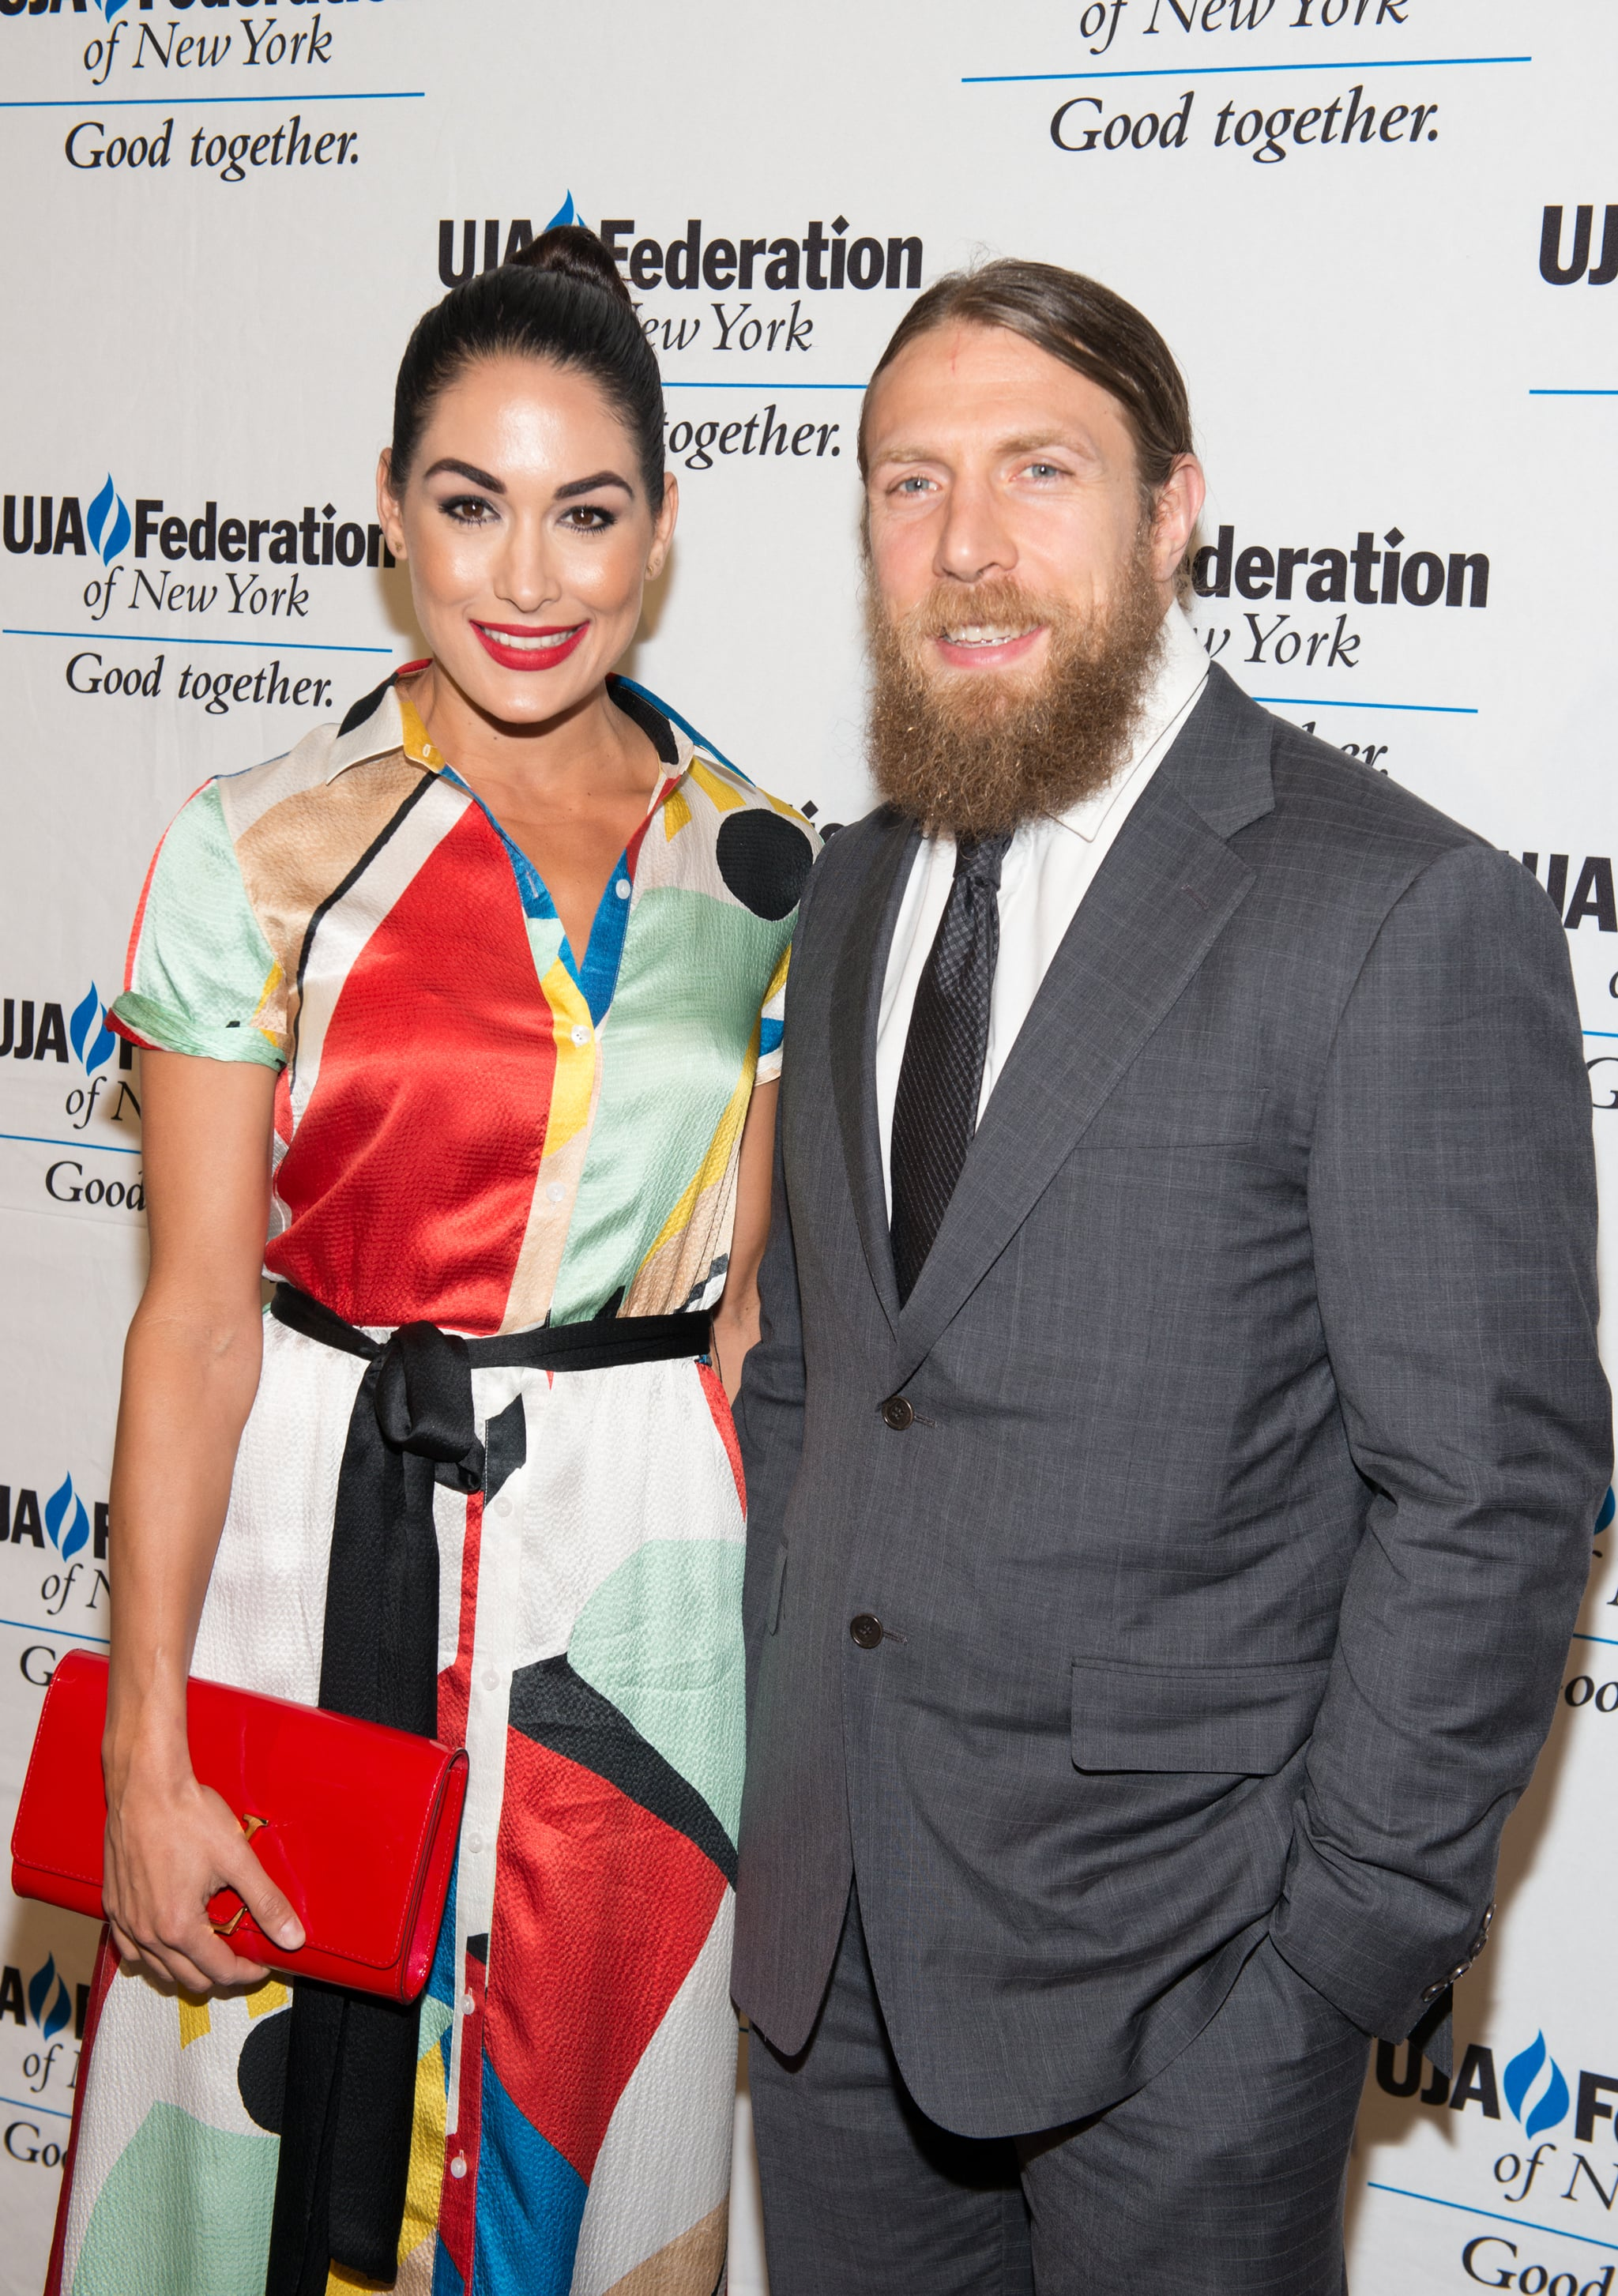 NEW YORK, NY - JUNE 02:  (L-R) Brie Bella and Daniel Bryan attend the UJA-Federation New York's Entertainment Division Signature Gala at 583 Park Avenue on June 2, 2015 in New York City.  (Photo by Noam Galai/WireImage)